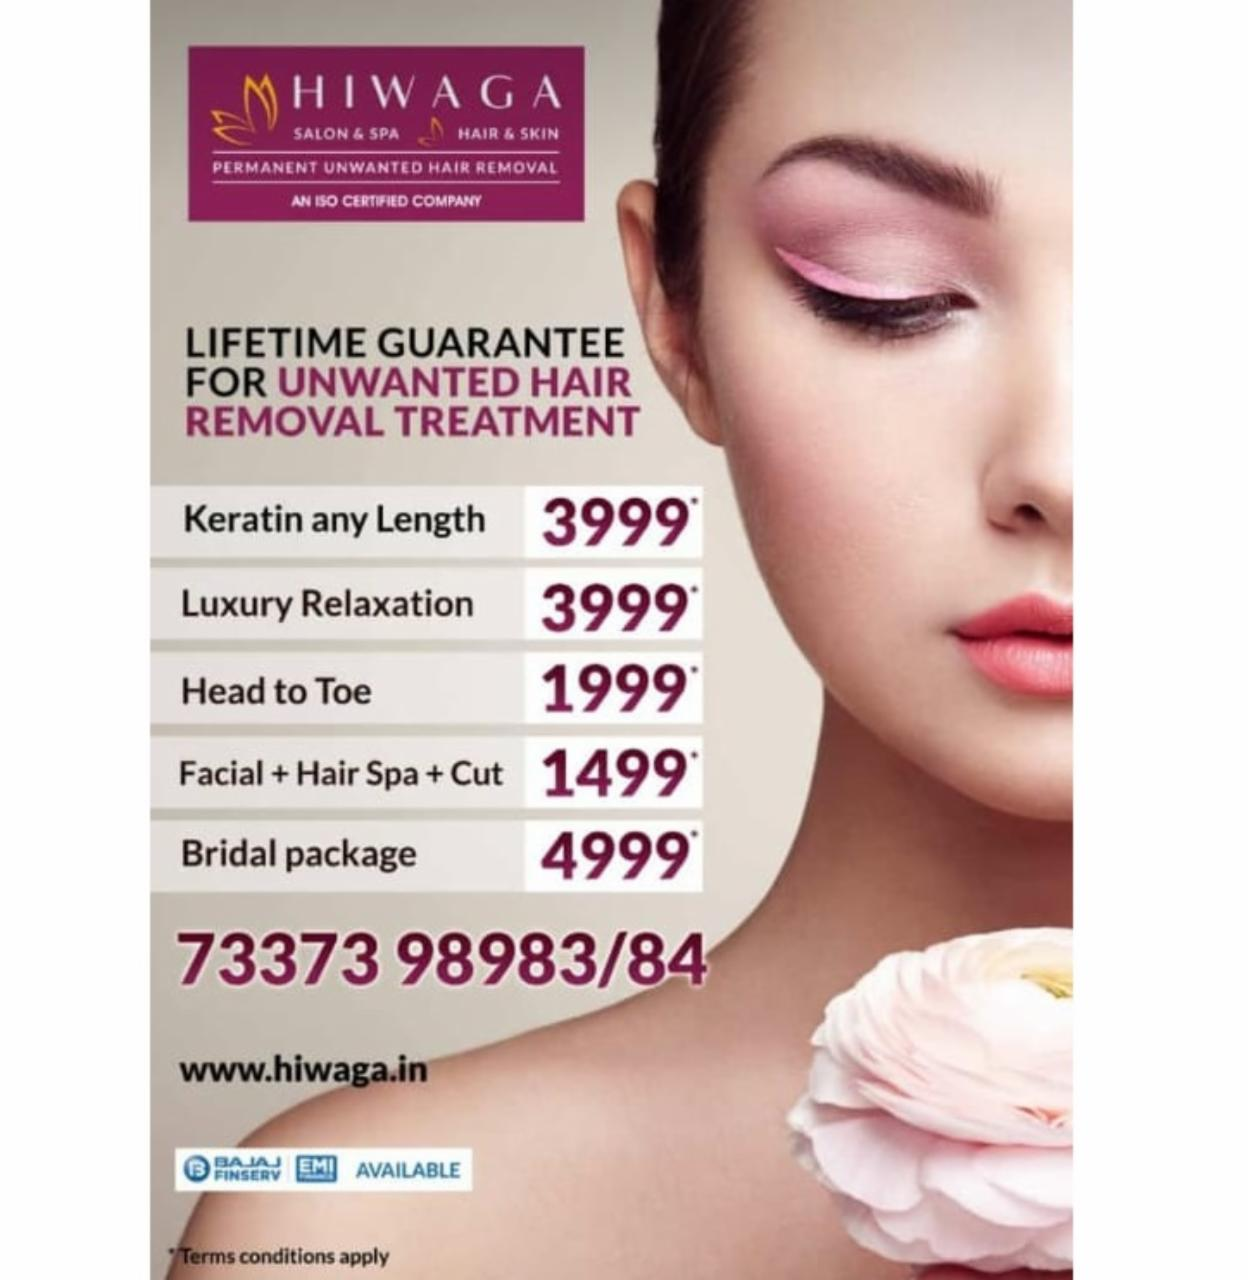 Lifetime guarantee for unwanted hair removal treat